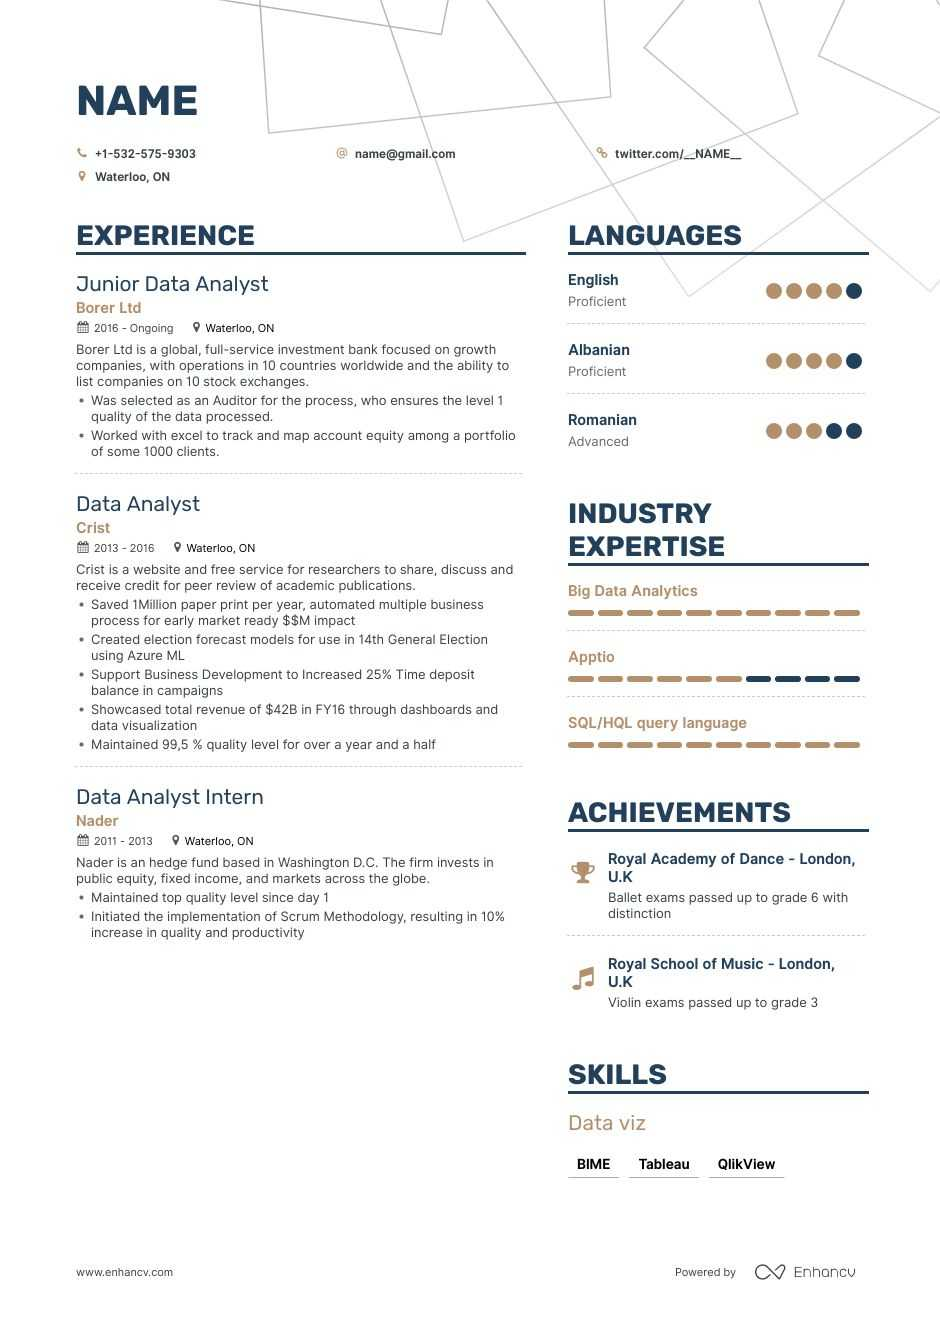 security analyst resume examples skills templates more for cyber entry level warehouse Resume Cyber Security Resume Entry Level